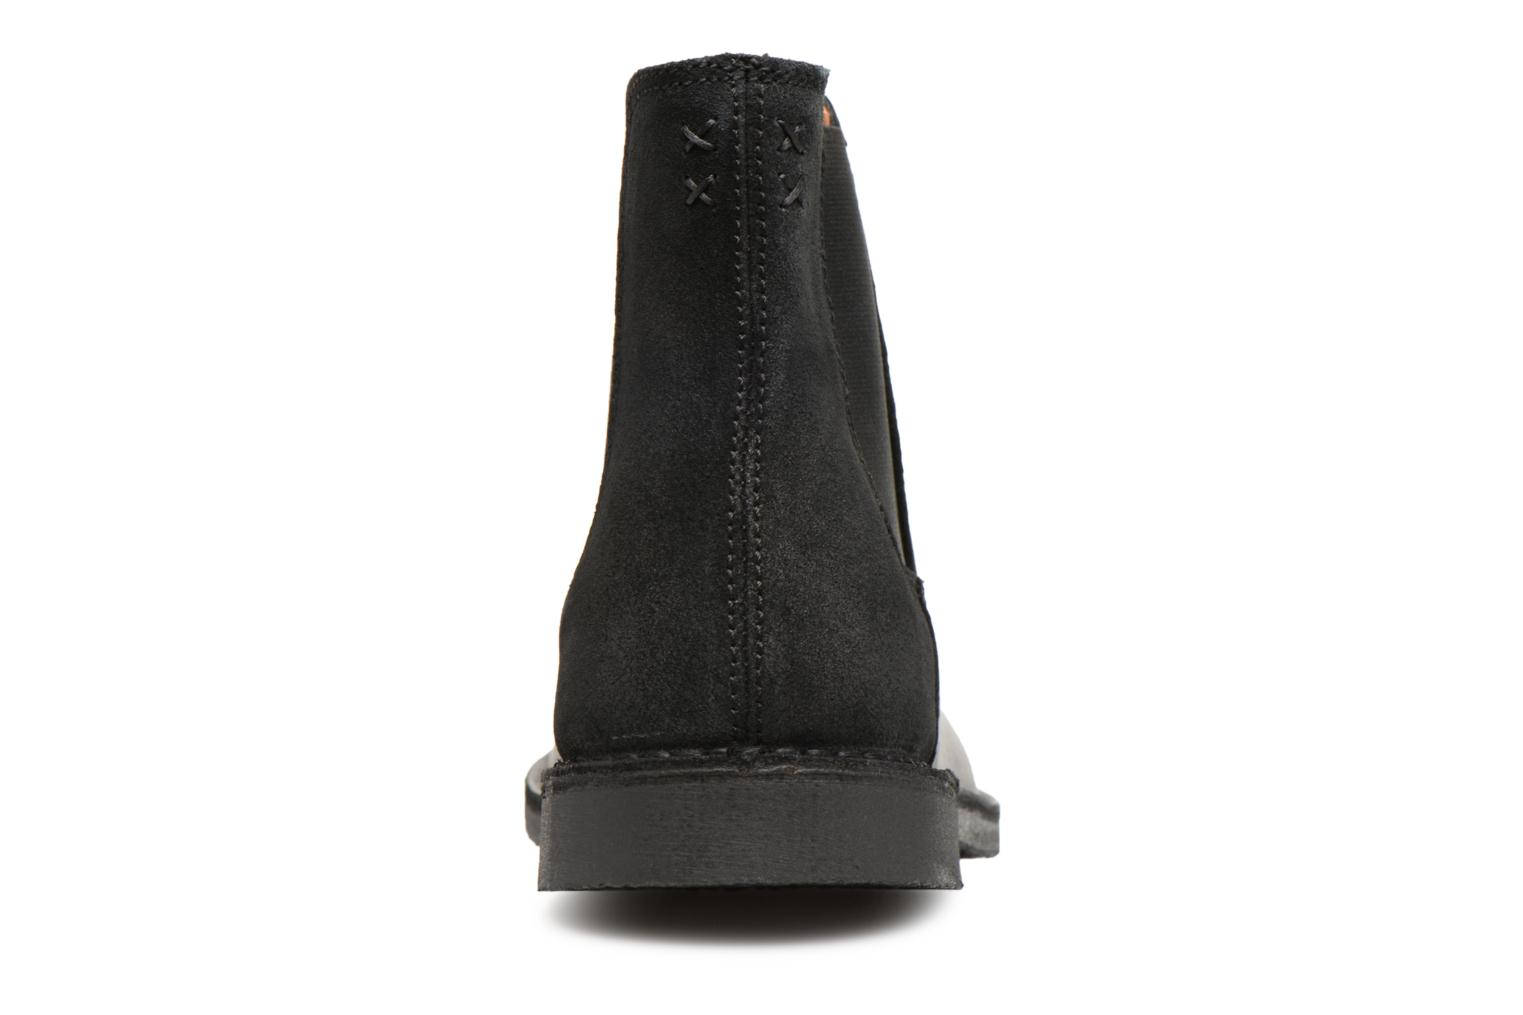 Cuir Boot Chelsey Mix Selected Noir Homme Slhroyce wilPZOXkuT